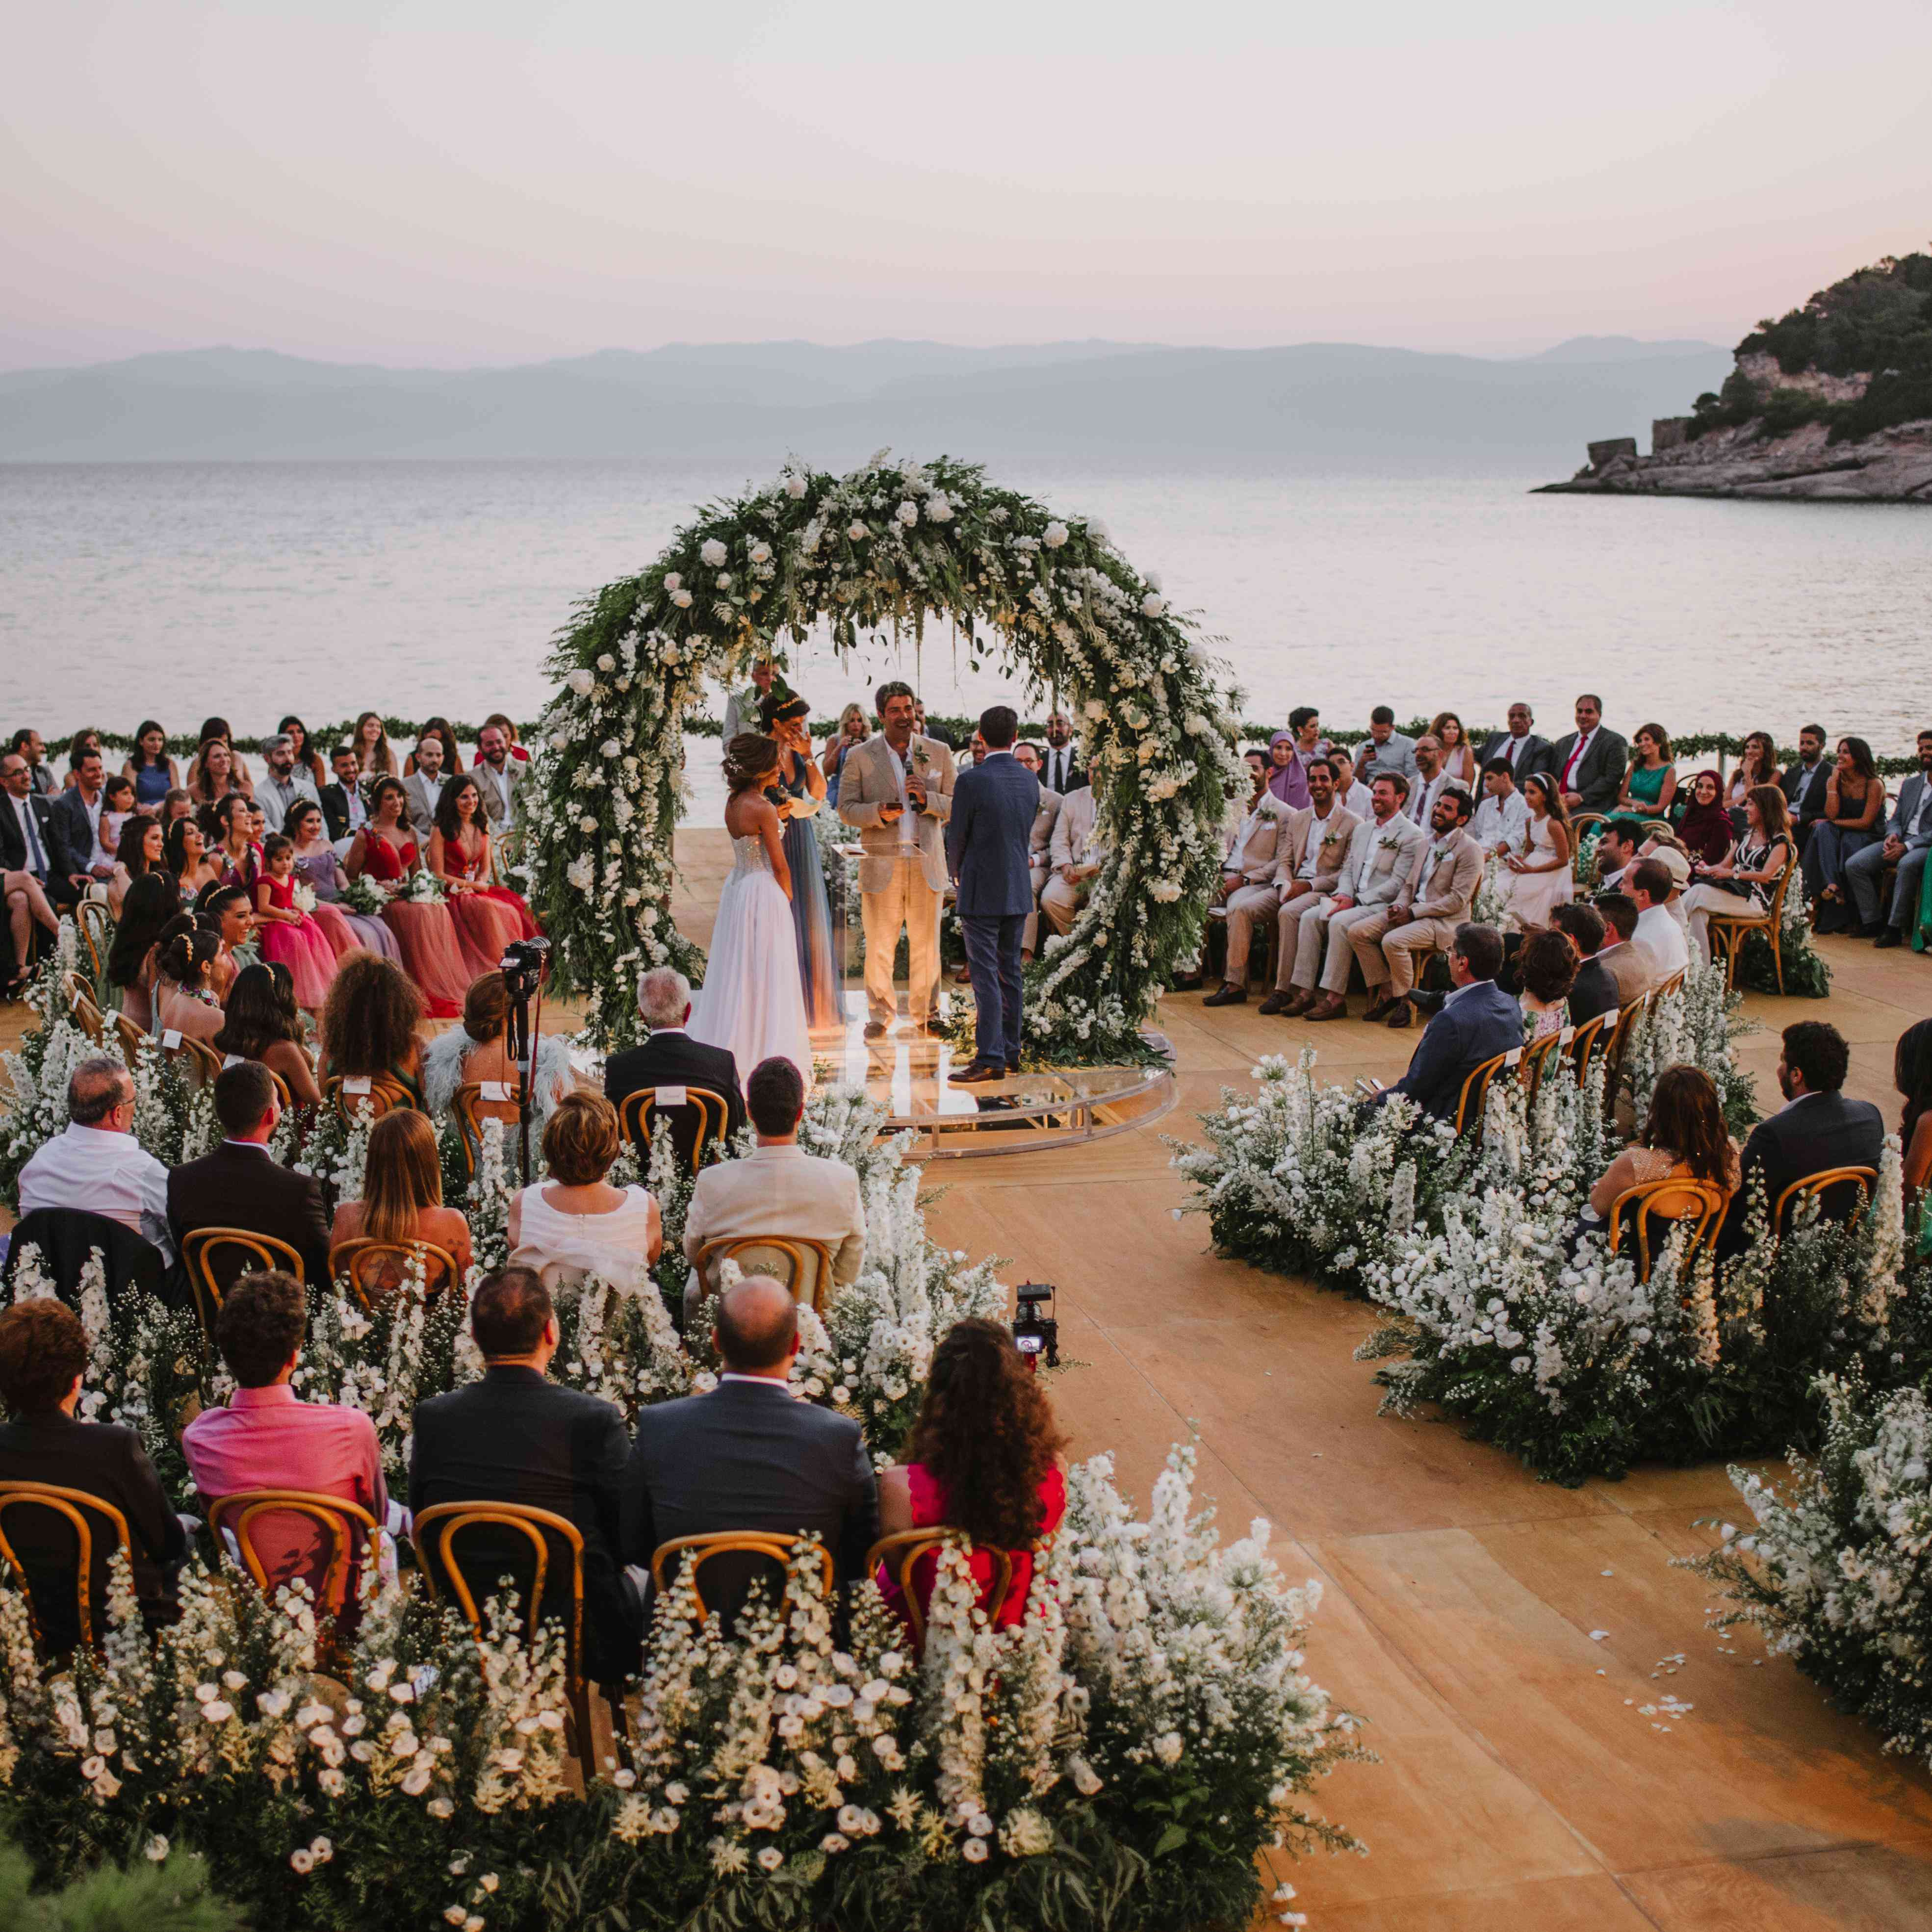 Real Greek Weddings: One Couple's Two Over-the-Top Weddings In Greece And Lebanon